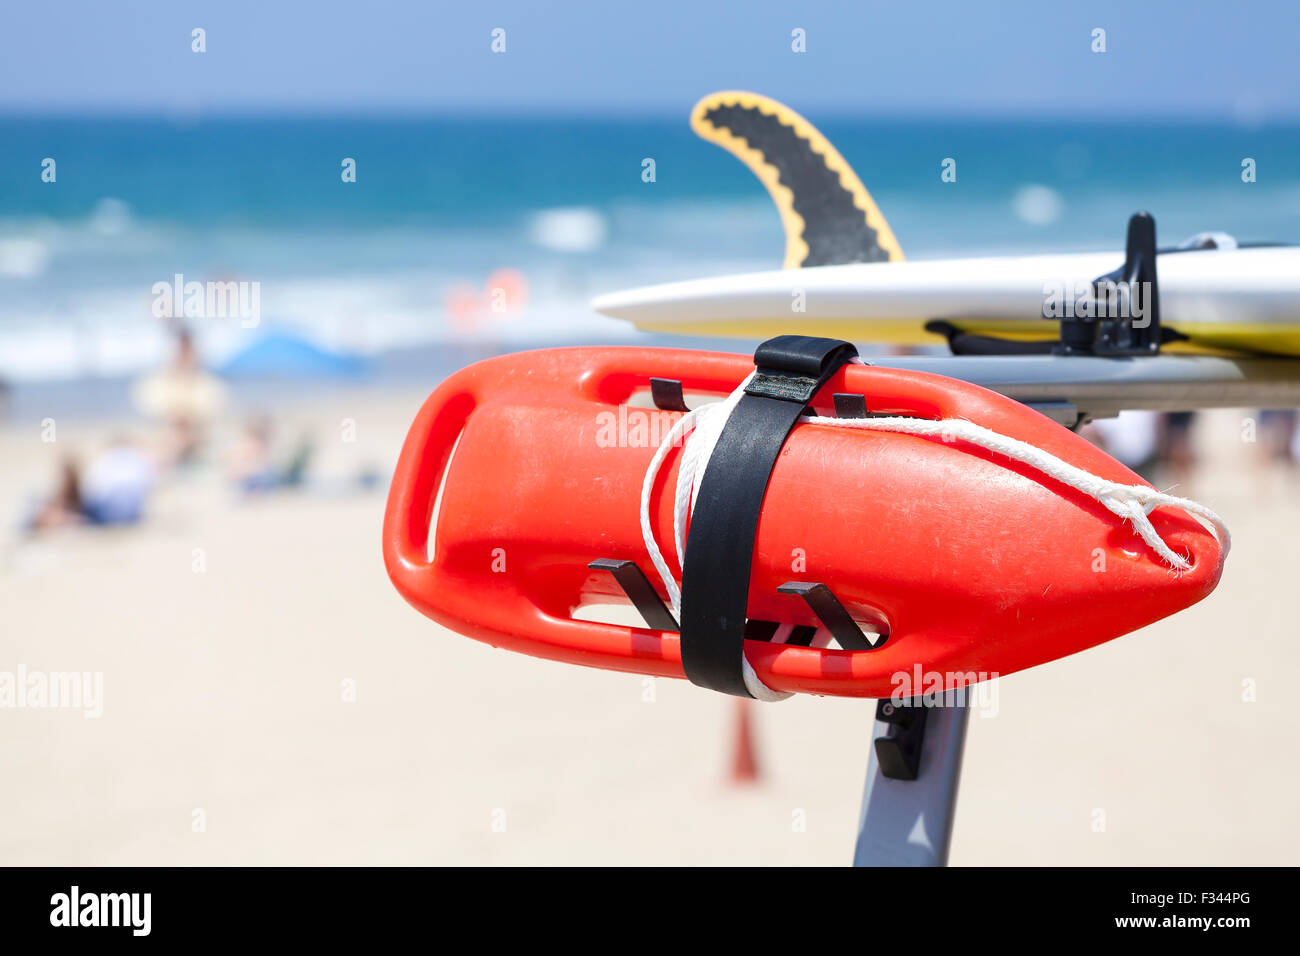 Lifeguard red buoy on a beach, shallow depth of field, space for text, California, USA. - Stock Image